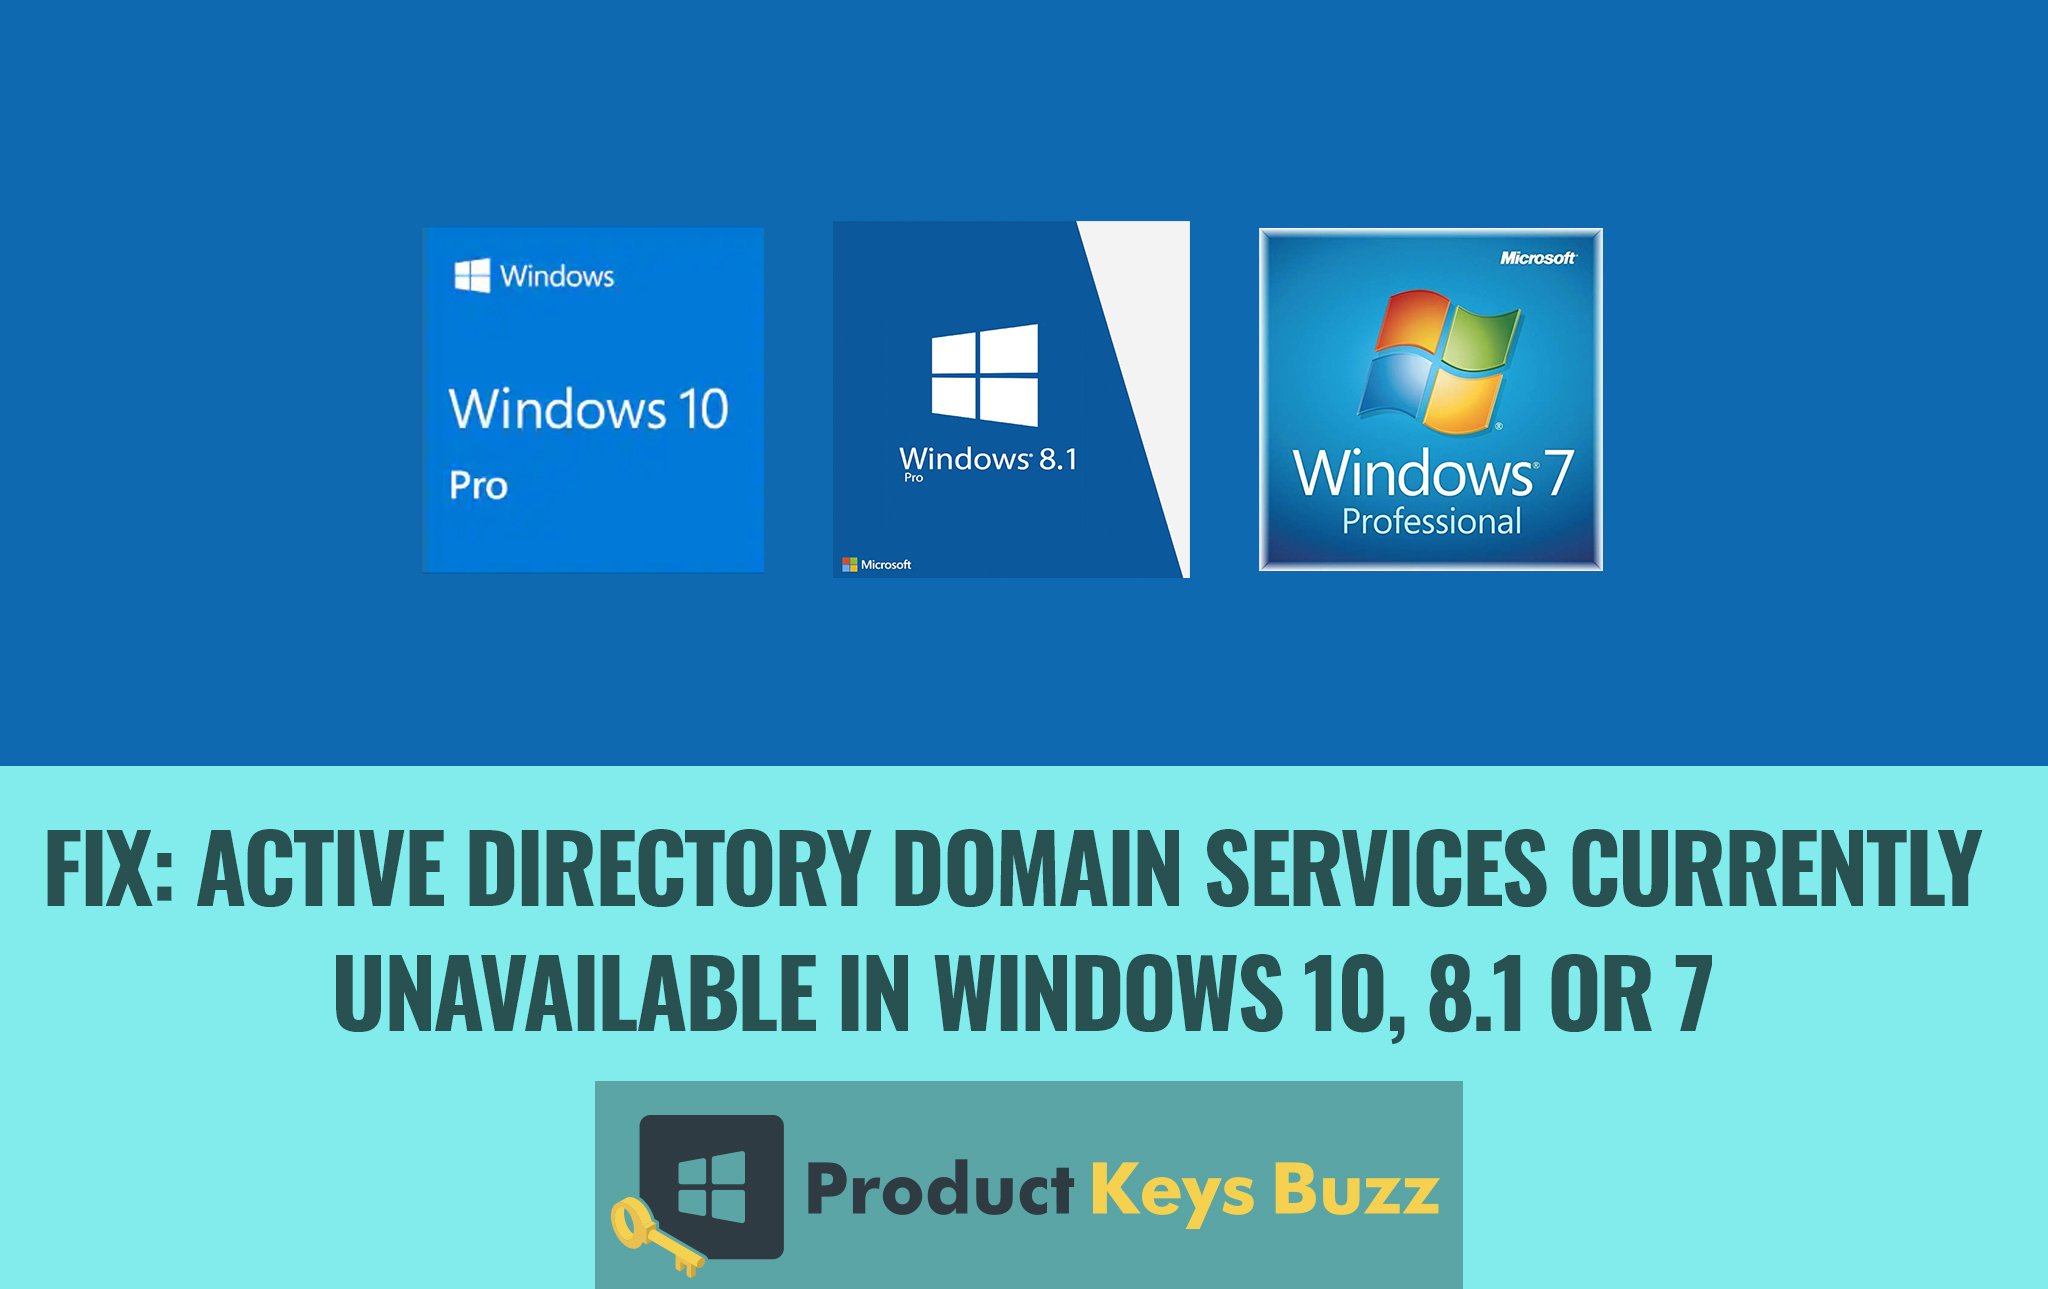 Fix Active Directory Domain Services Currently Unavailable In Windows 10, 8.1 or 7